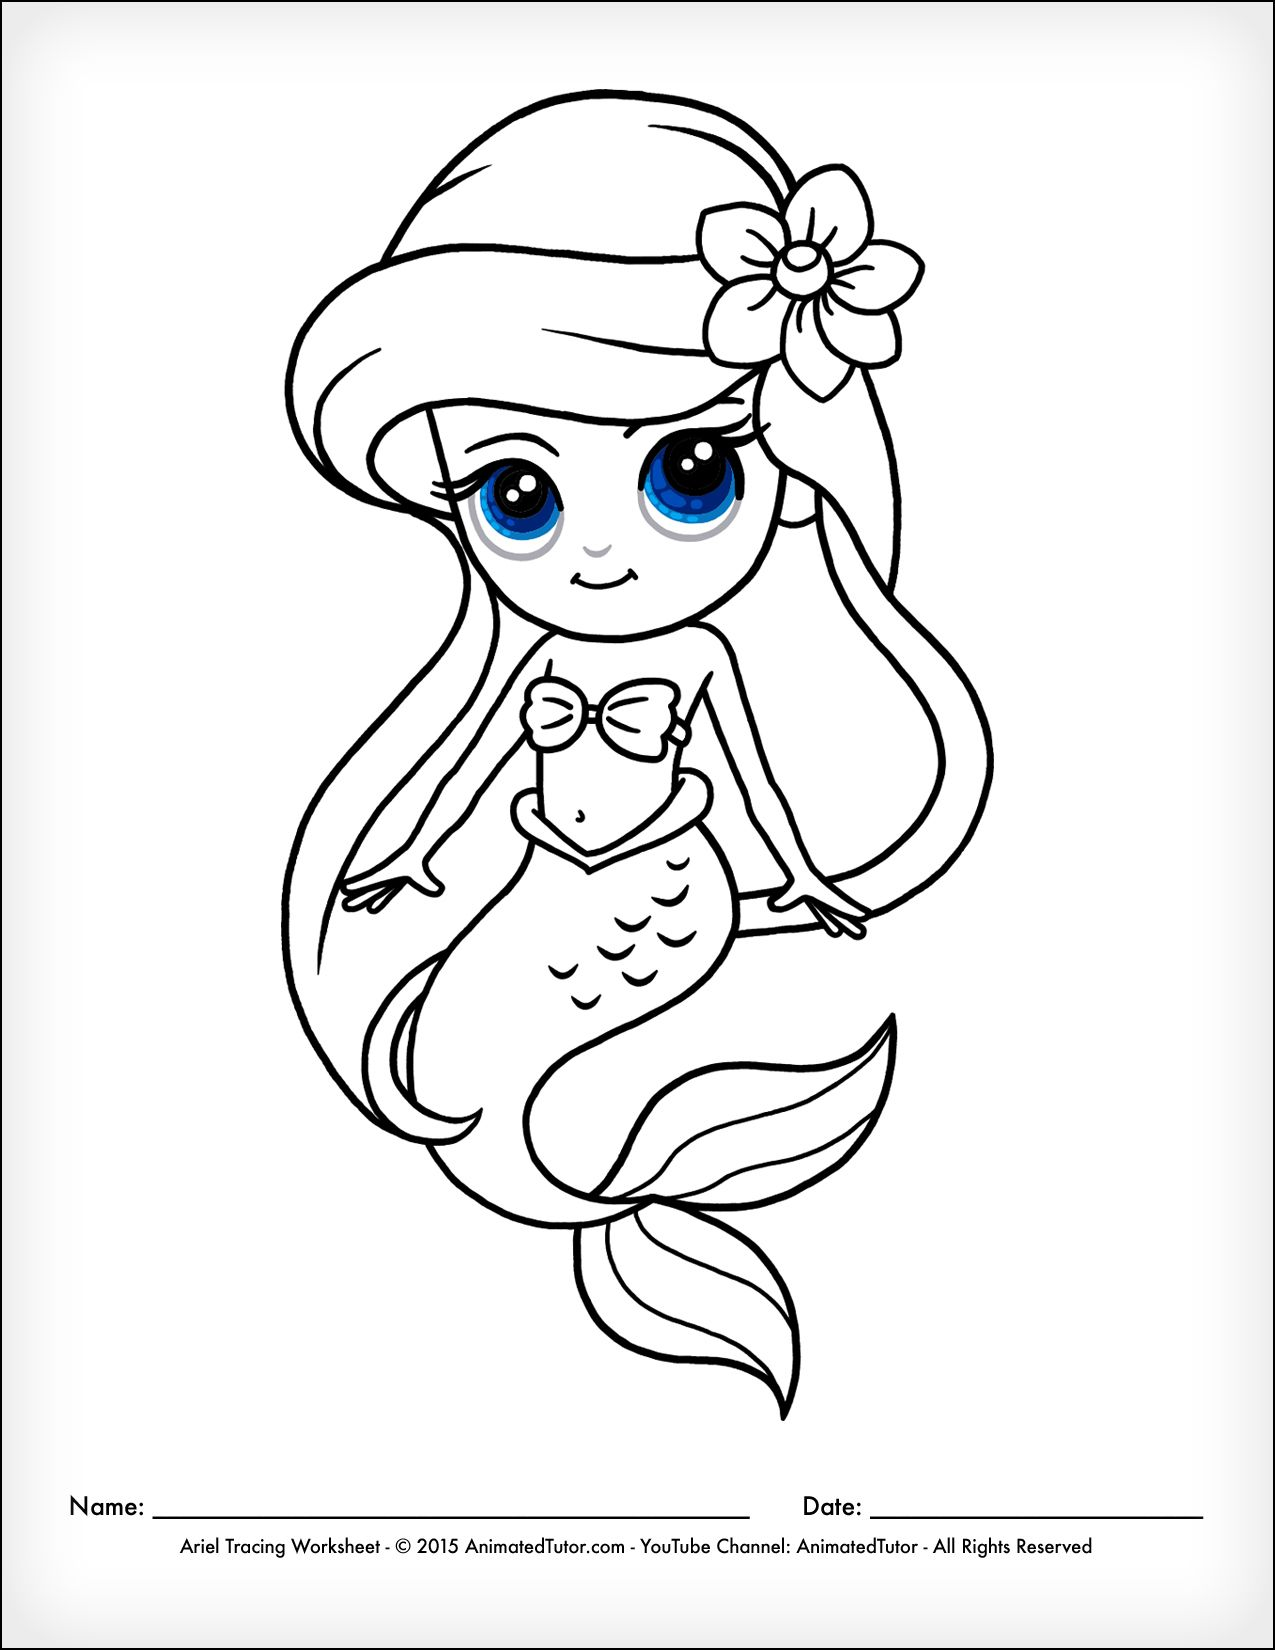 Animatedtutor Com How To Draw A Mermaid Ariel The Little Mermaid Cute And Easy Animatedtutor Mermaid Drawings Mermaid Coloring Pages Easy Mermaid Drawing